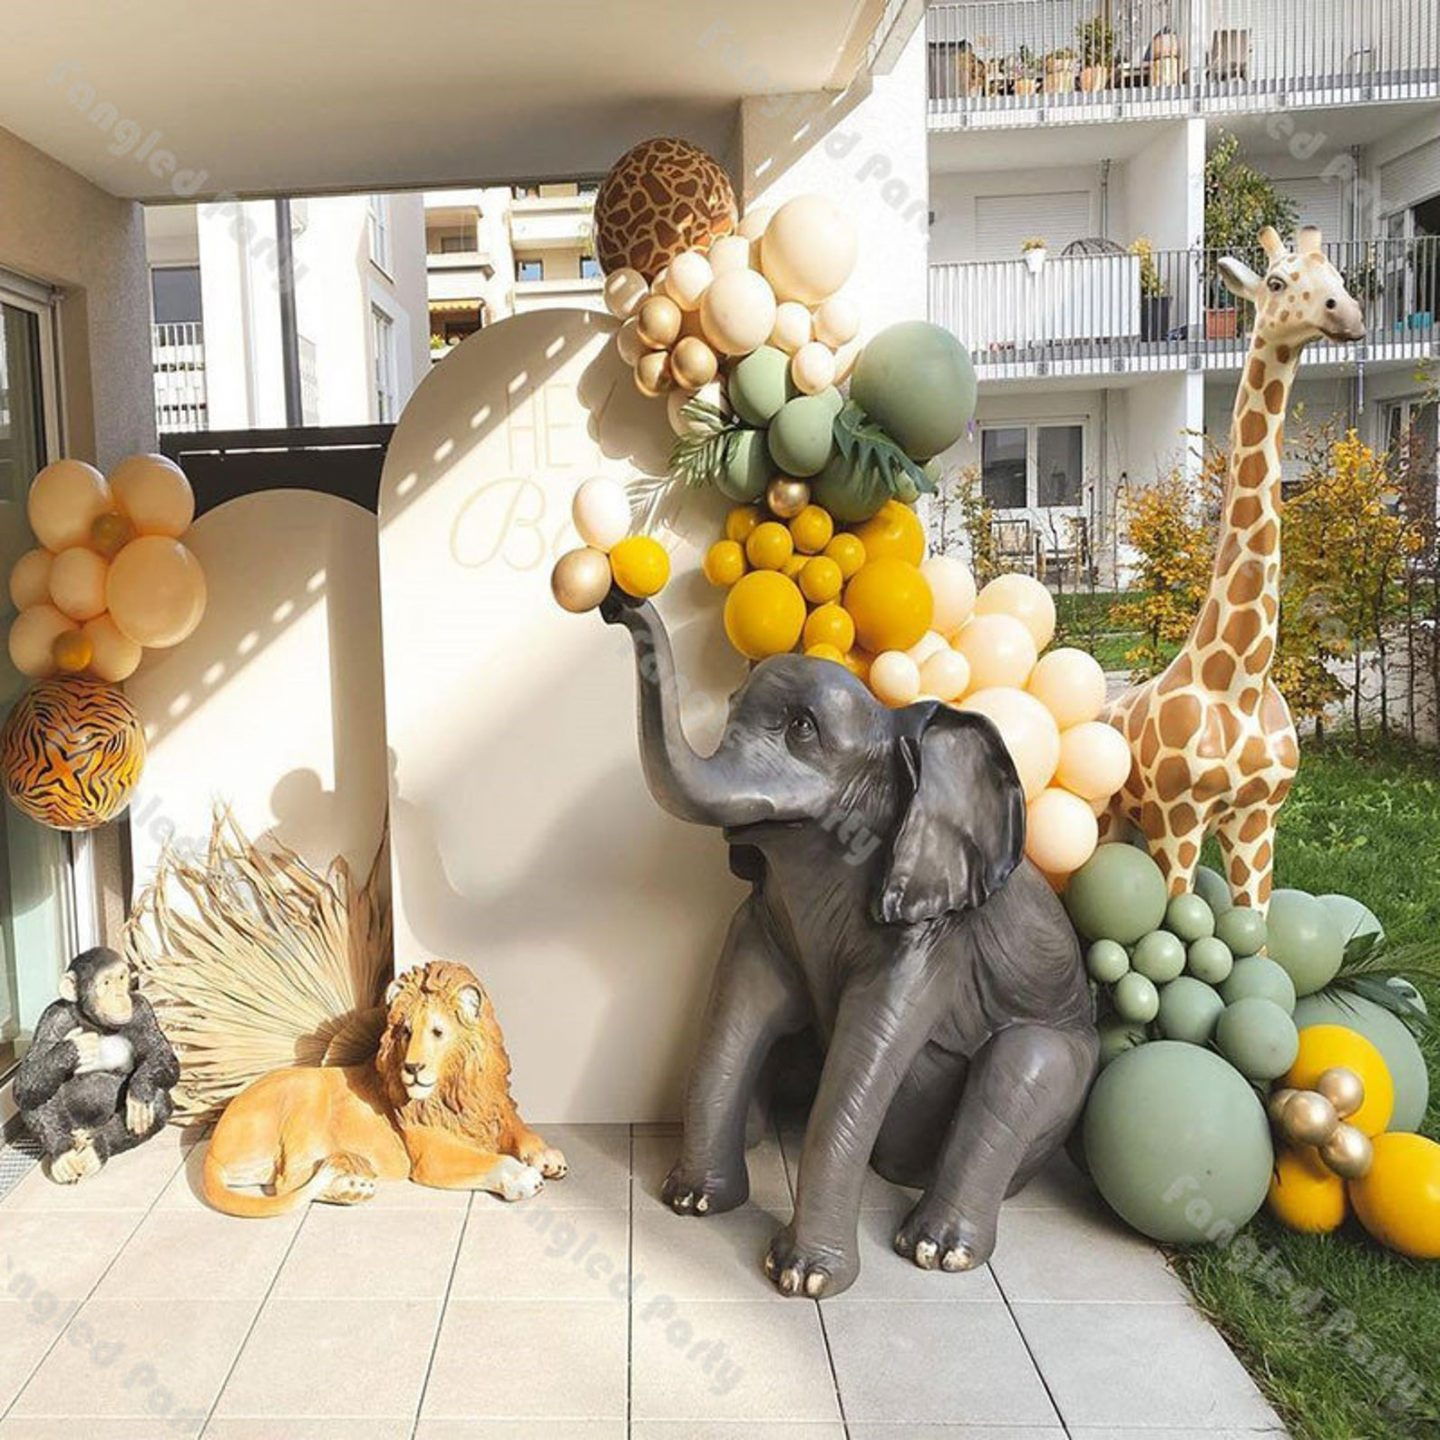 Safari birthday party decor with elephant, lion and giraffe and balloons